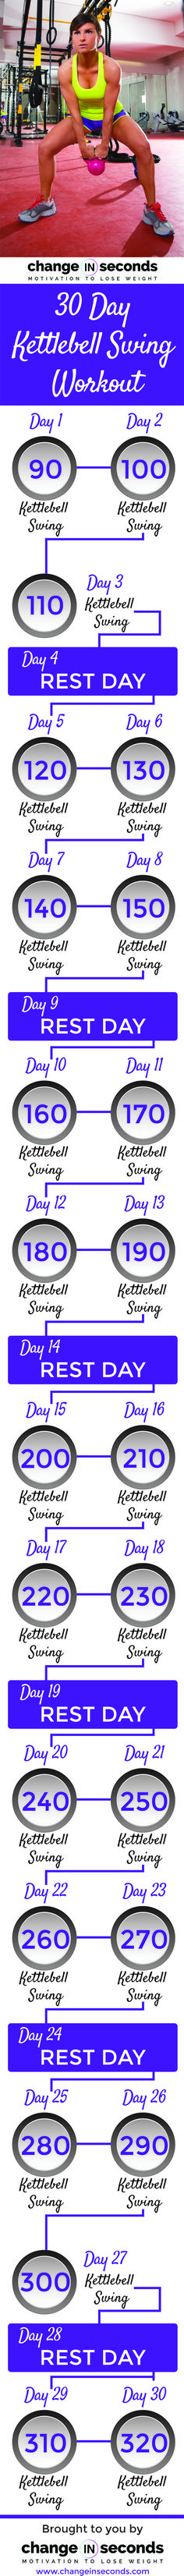 30 Day Kettlebell Swing Workout (Download PDF) http://www.changeinseconds.com/30-day-kettlebell-swing-workout/